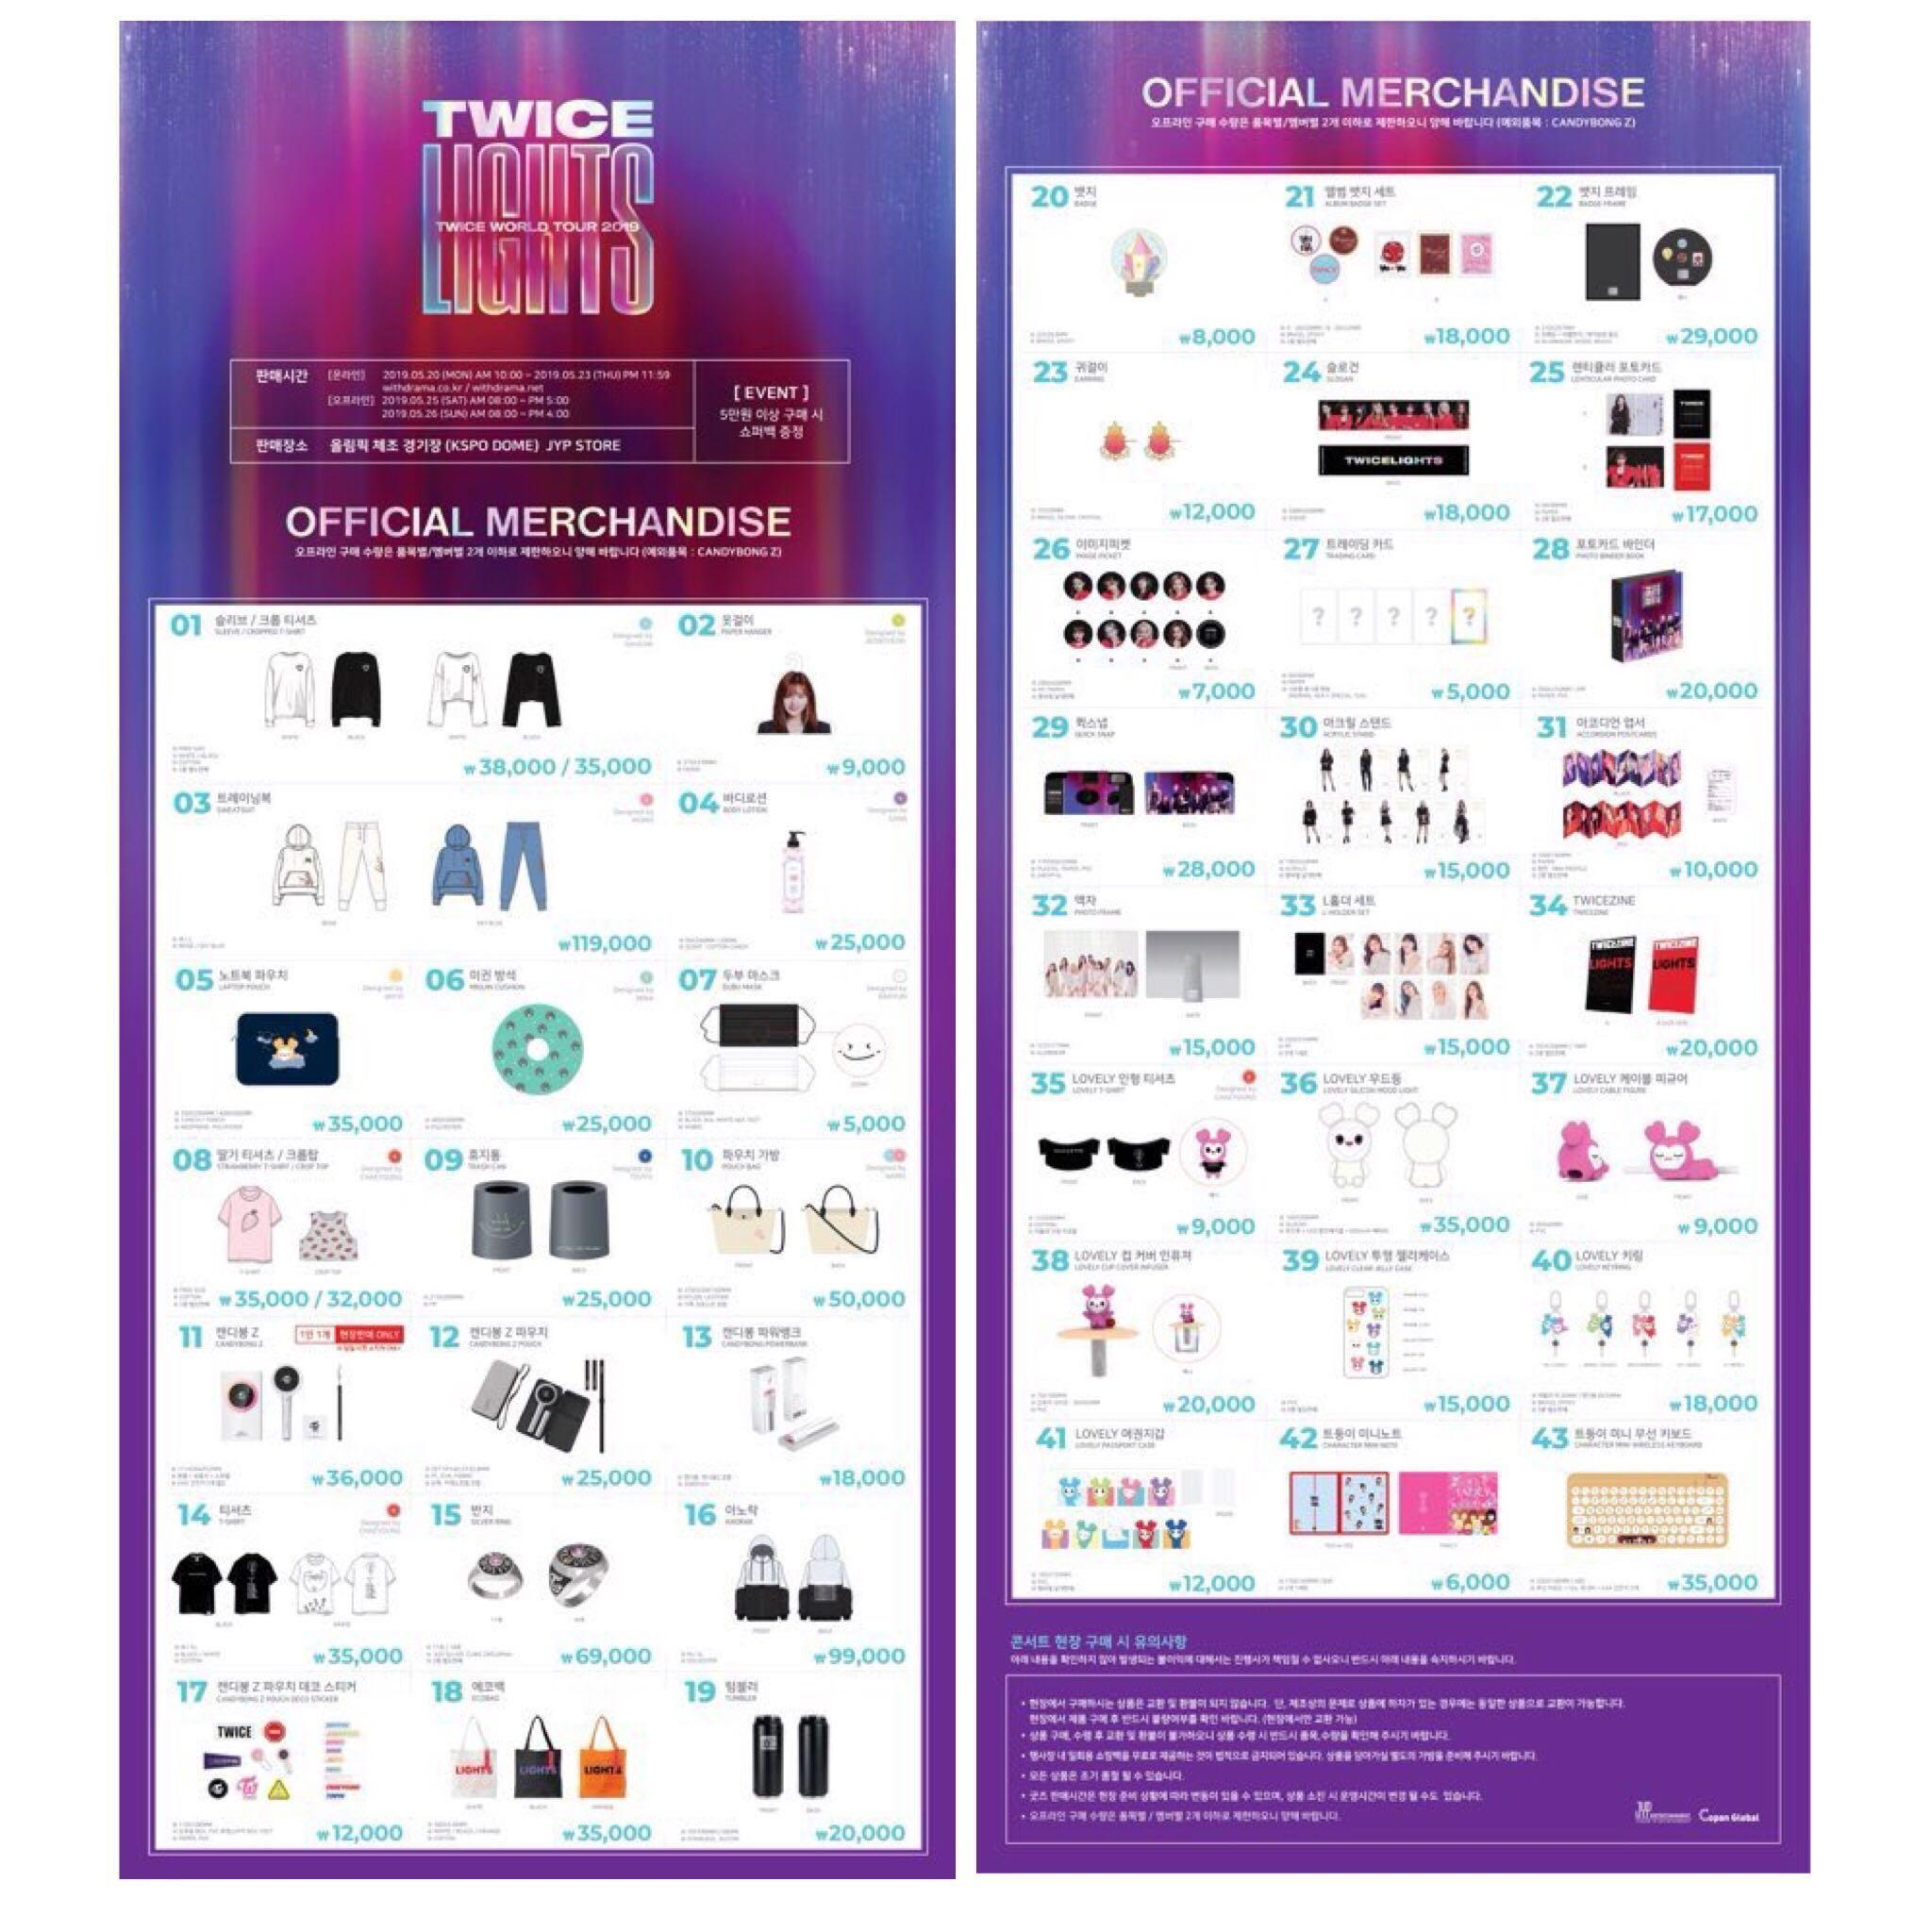 Po Closed Twice World Tour 2019 Twice Lights Official Merchandise